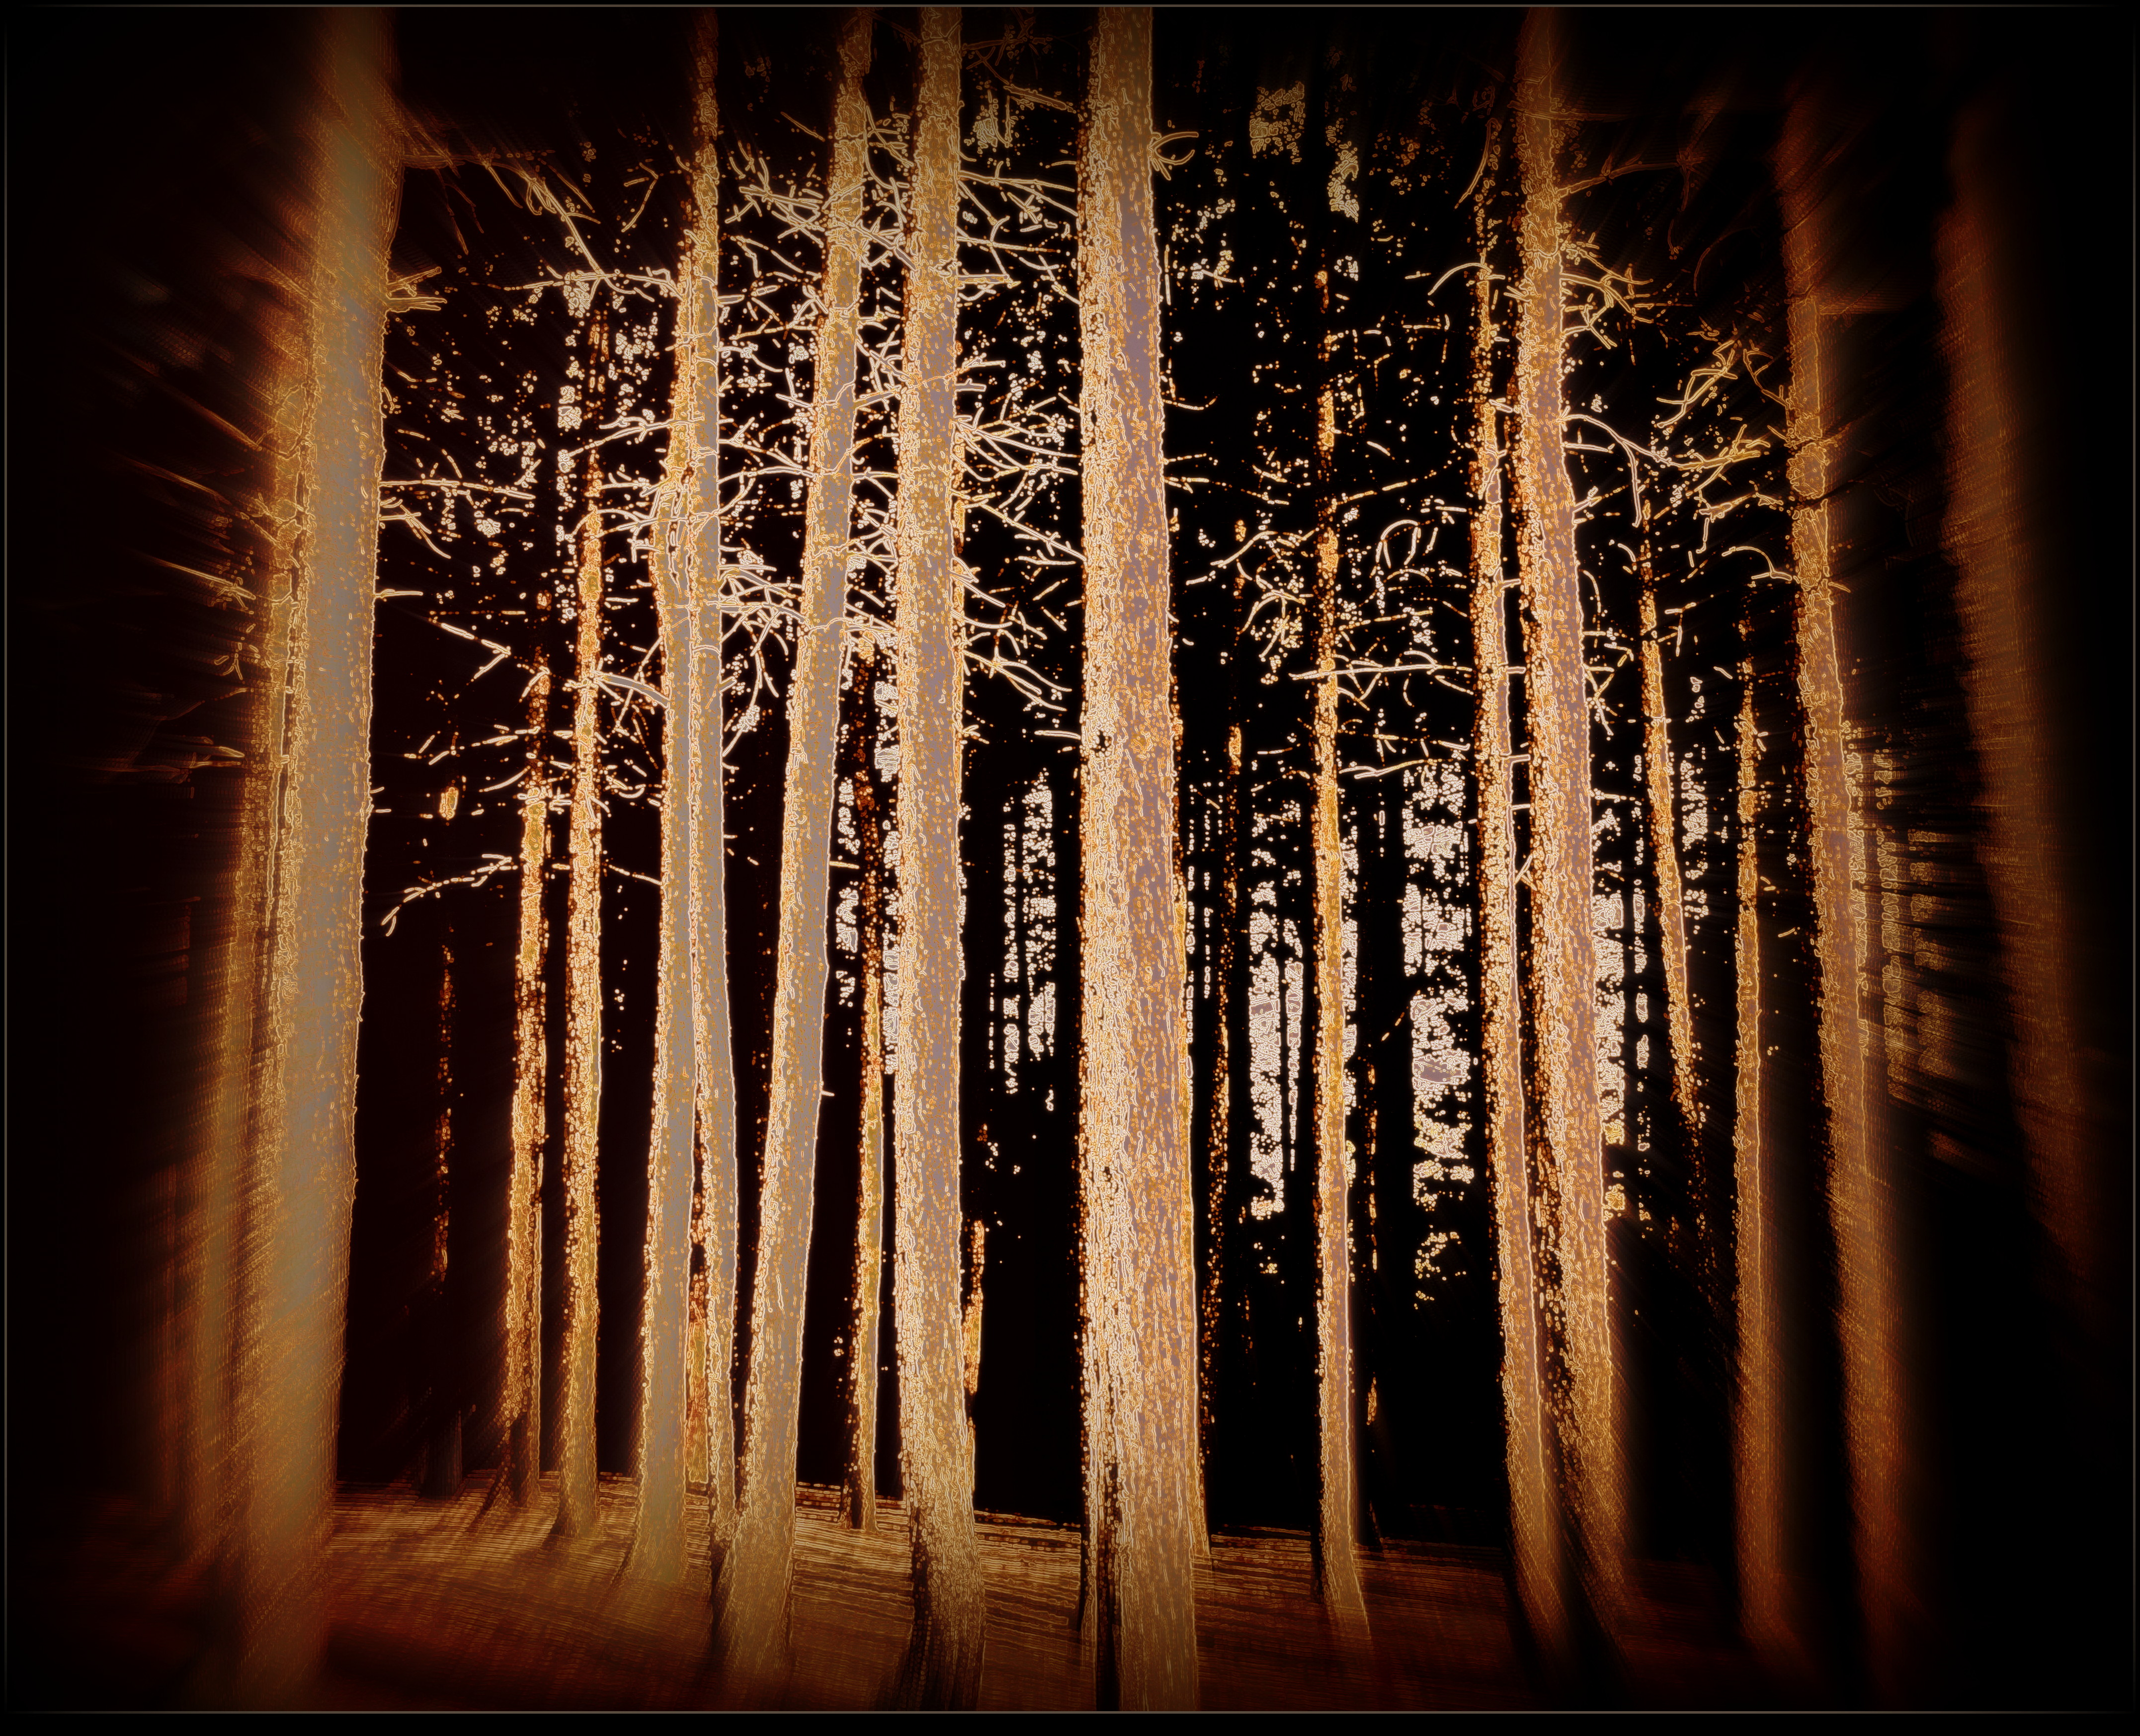 Eerie Forest by surrealistic-gloom